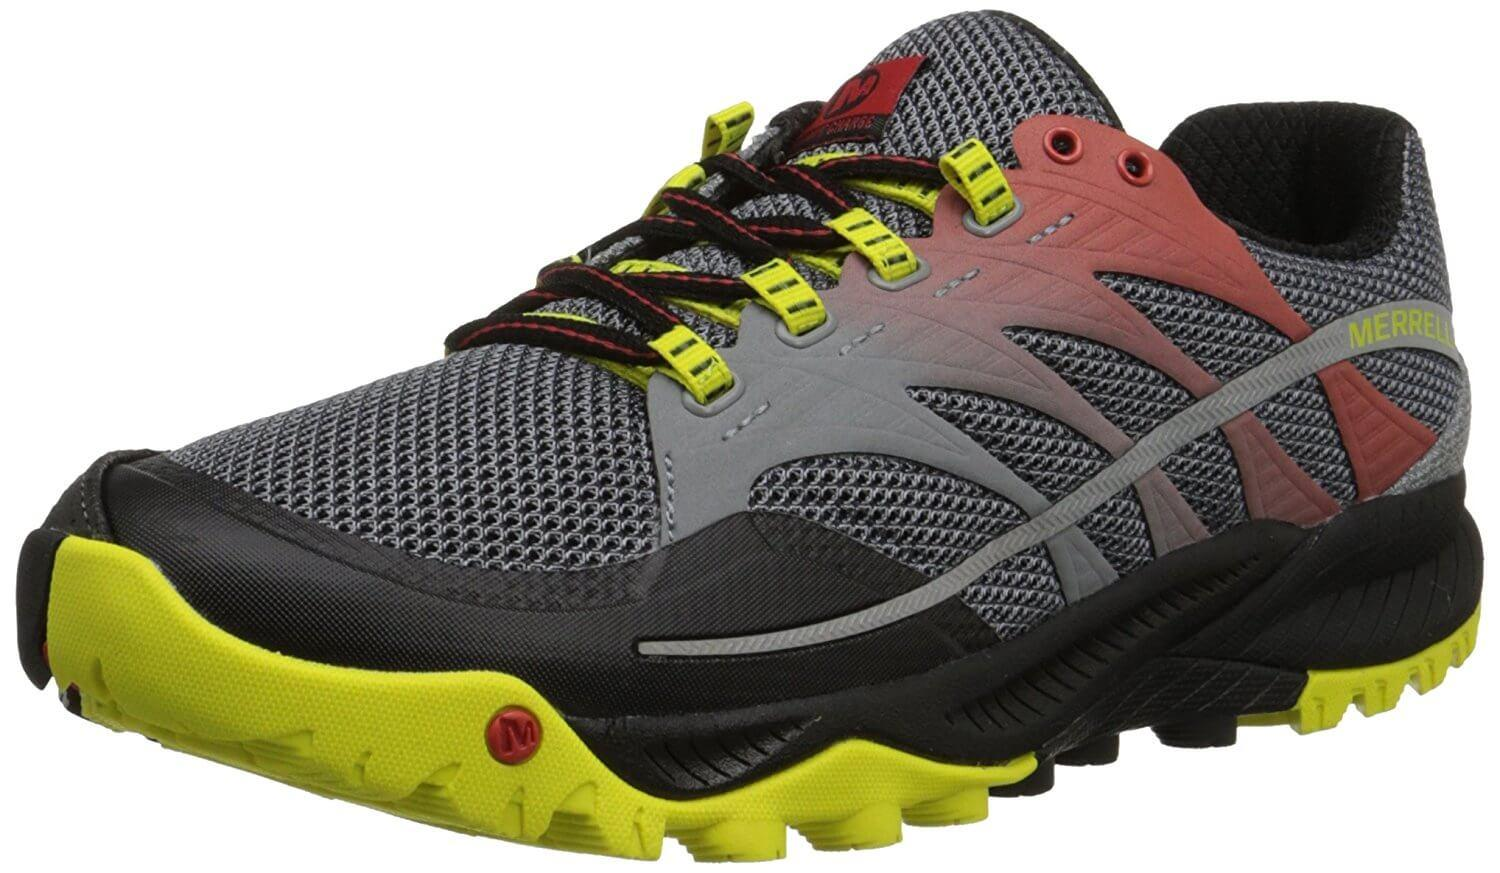 The Merrell All Out Charge is an extremely competent trail shoe.